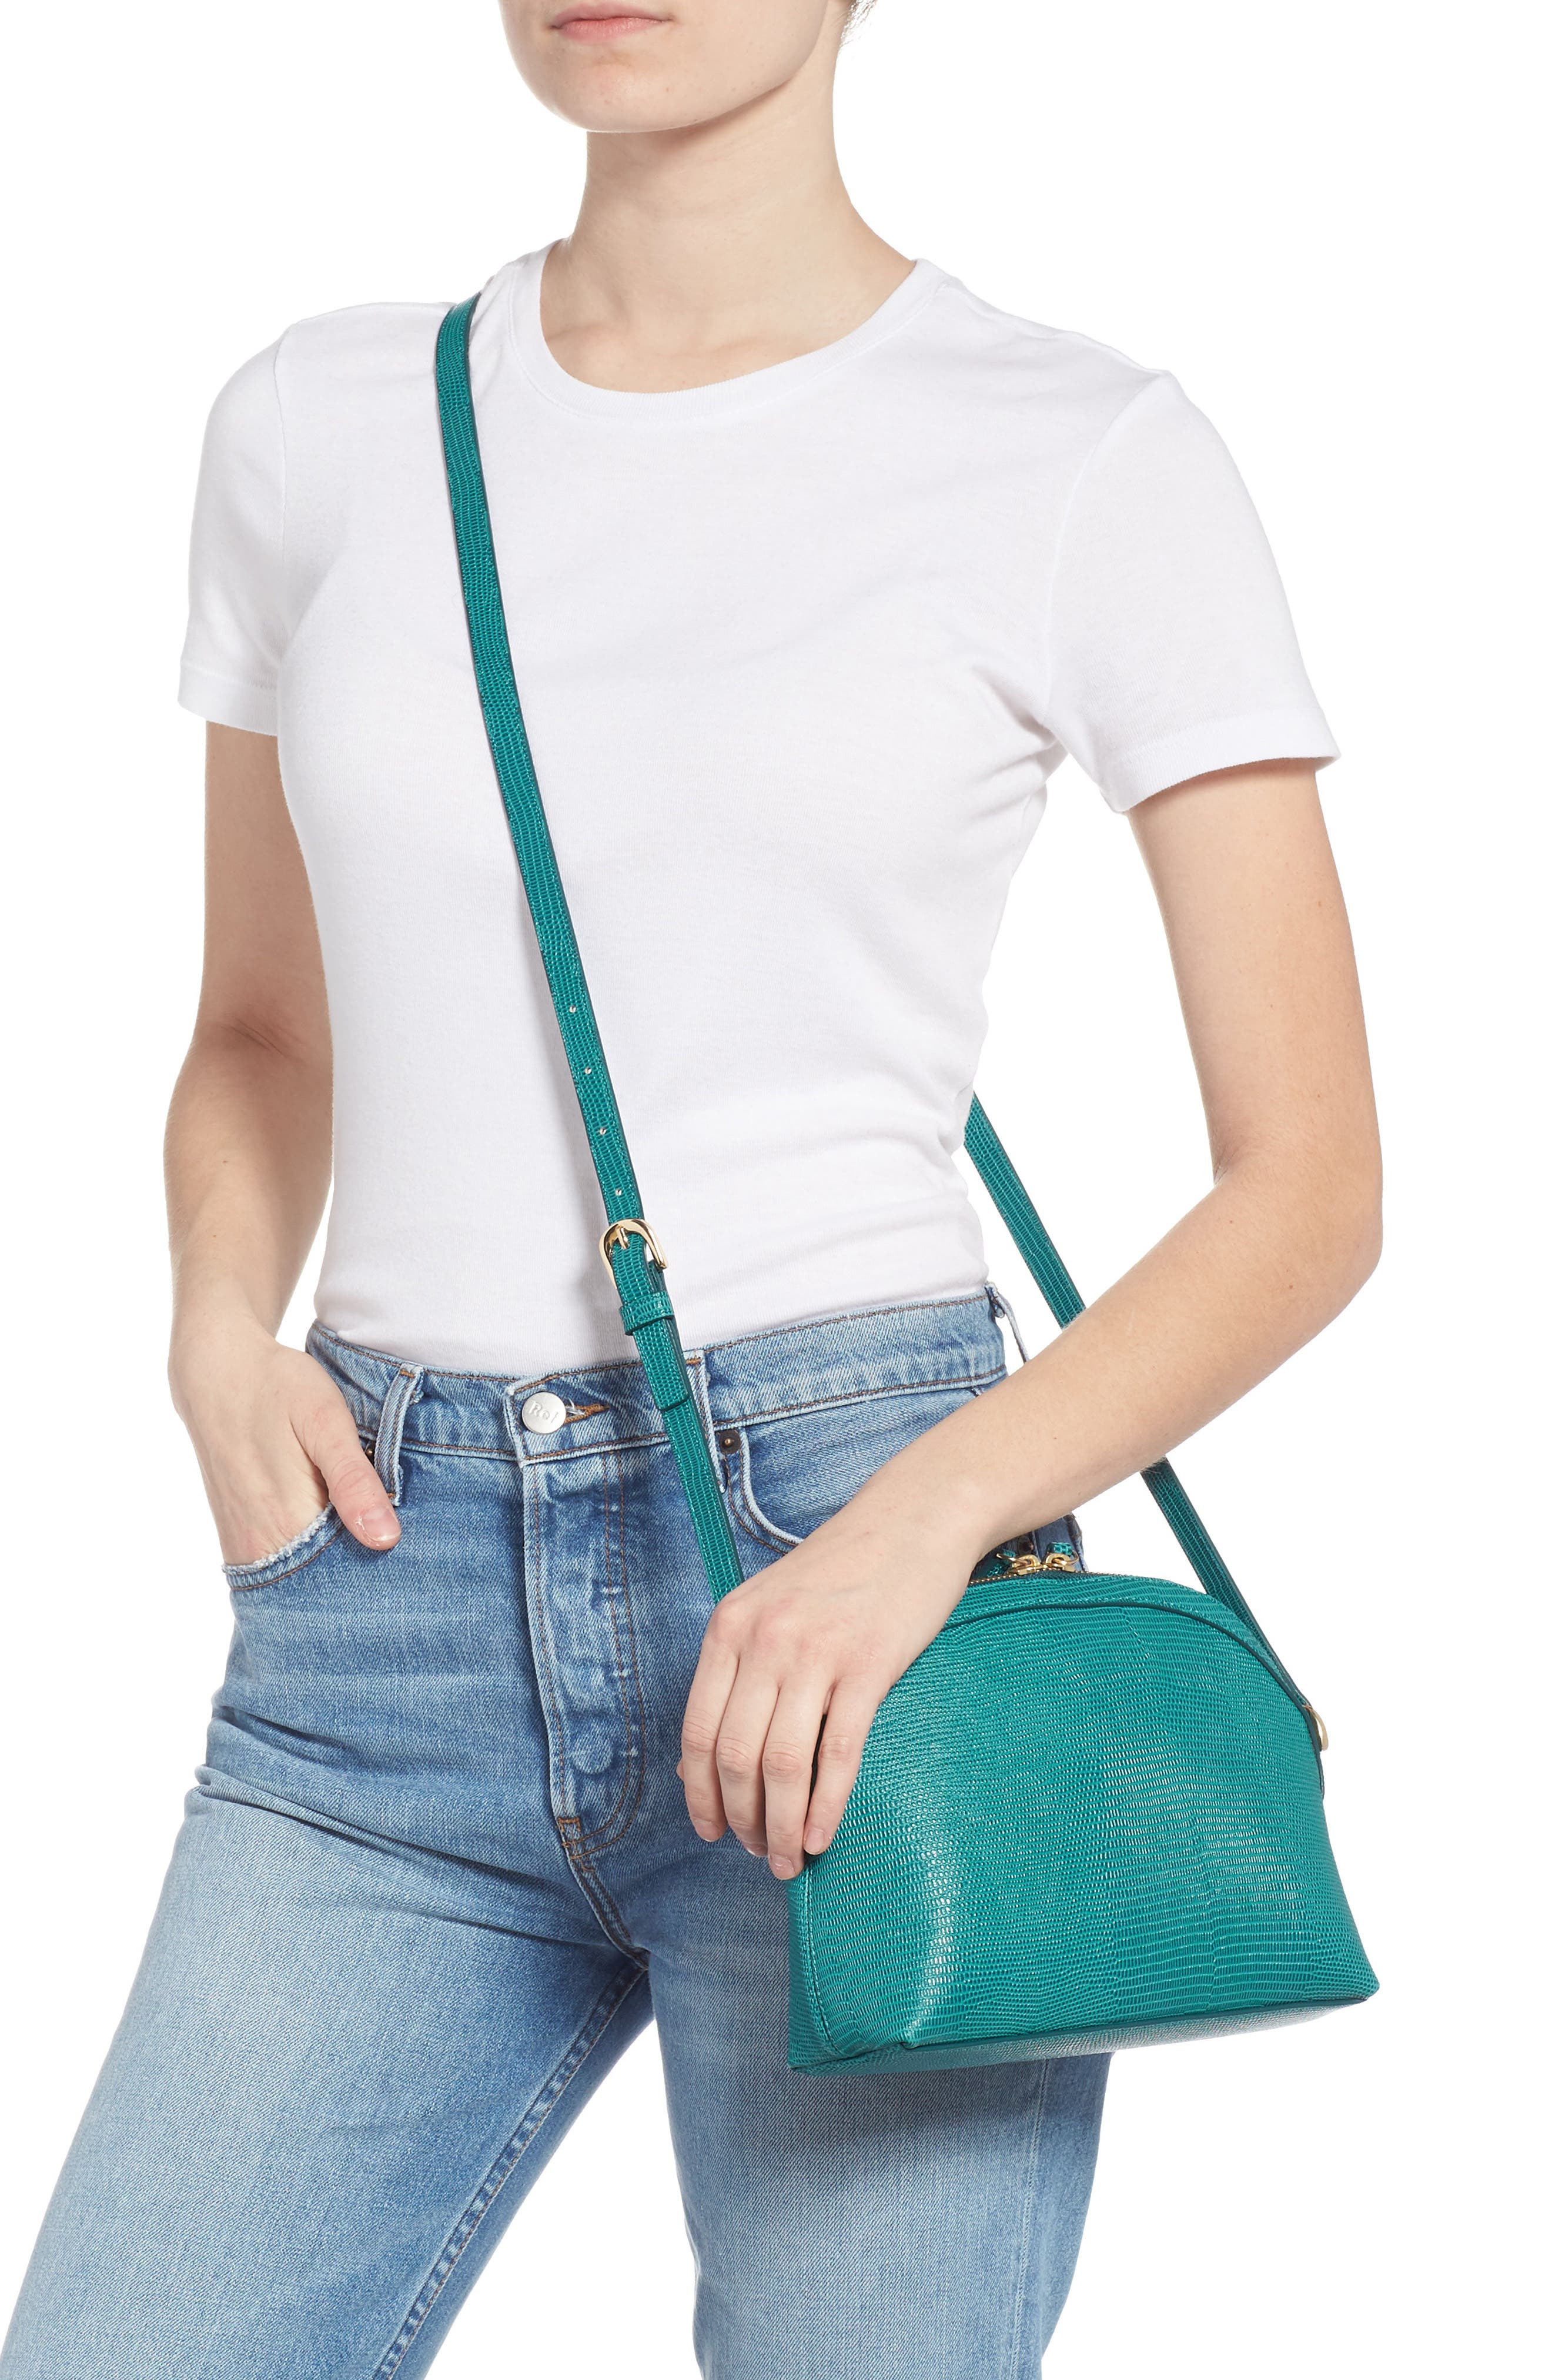 Isobel Half Moon Leather Crossbody Bag,                             Alternate thumbnail 2, color,                             TEAL HARBOR